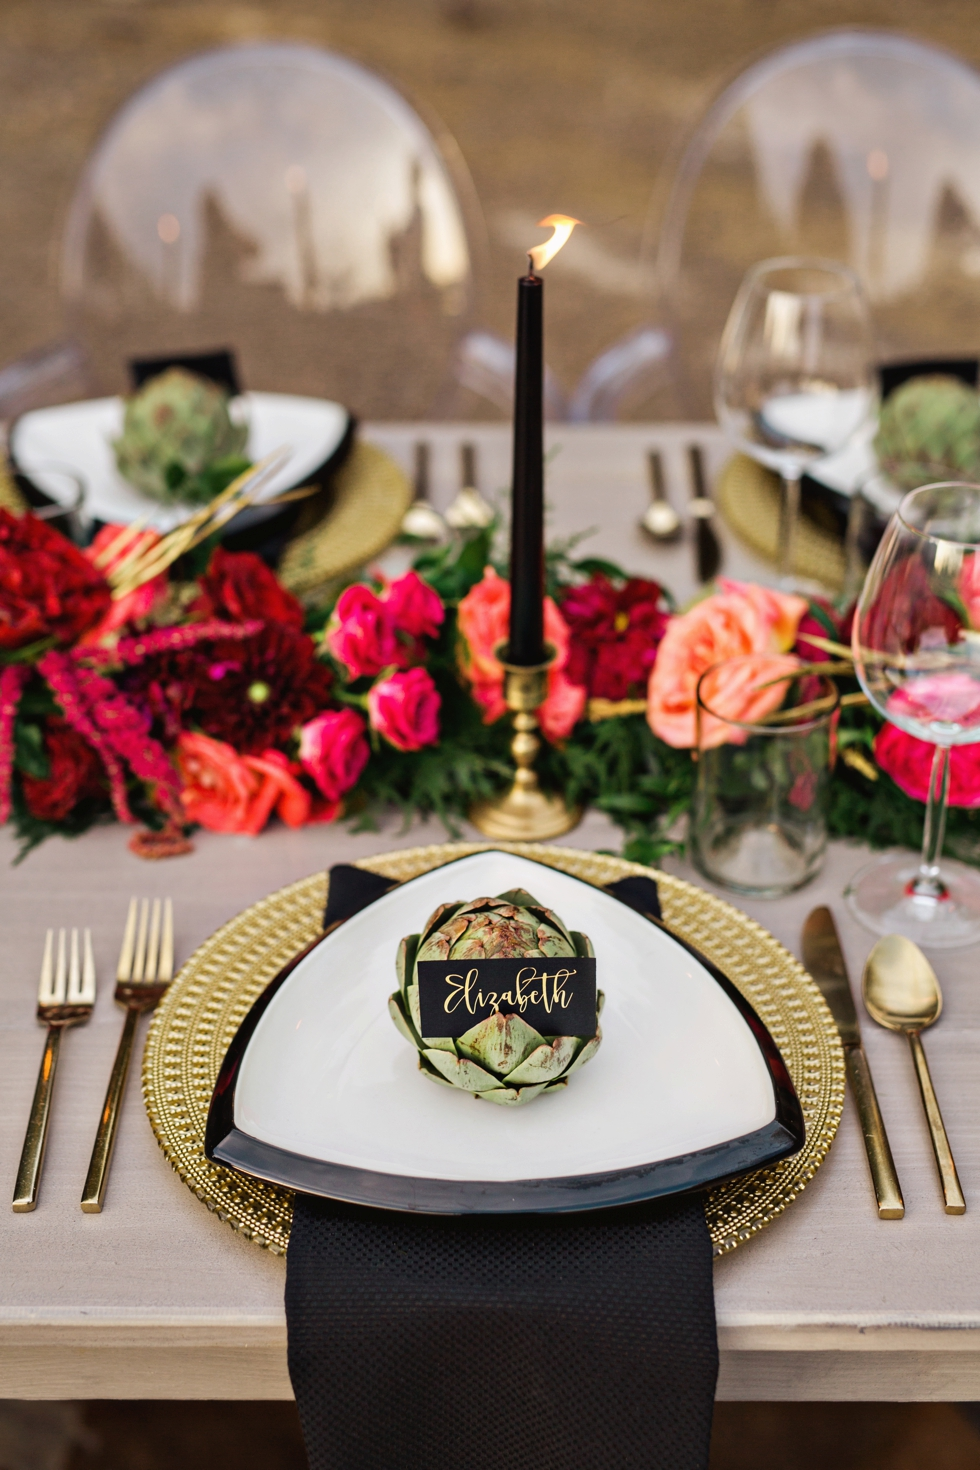 Artichoke Place Setting Red Flower Table Garland with Black Candles Graystone Quarry Nashville Weddings